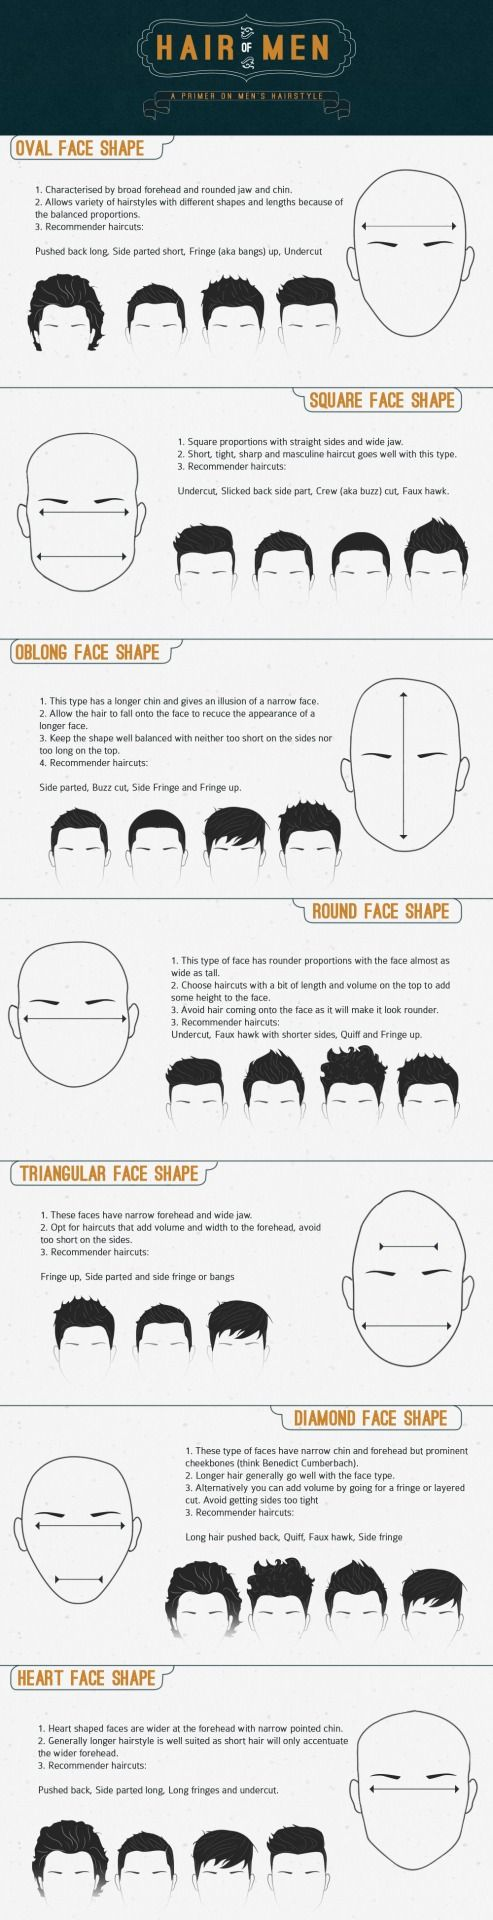 Straight up hairstyle boy a primer on menus hairstyle  knowledge  pinterest  primer